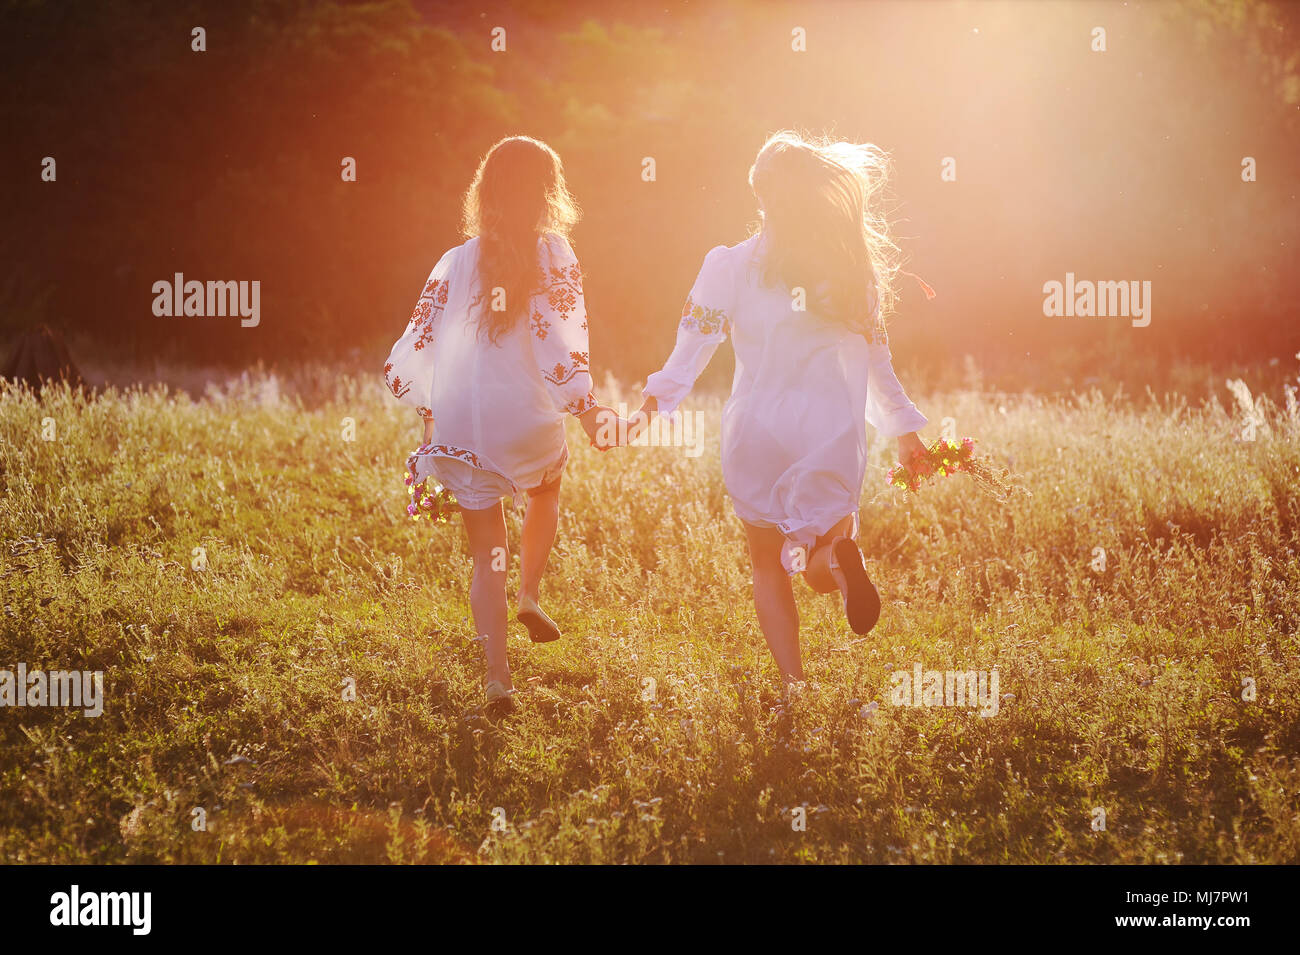 two young beautiful girls in white shirts with floral ornament with flower wreaths in their hands run against the background of nature and grass in the contour or the back light of the sun. - Stock Image